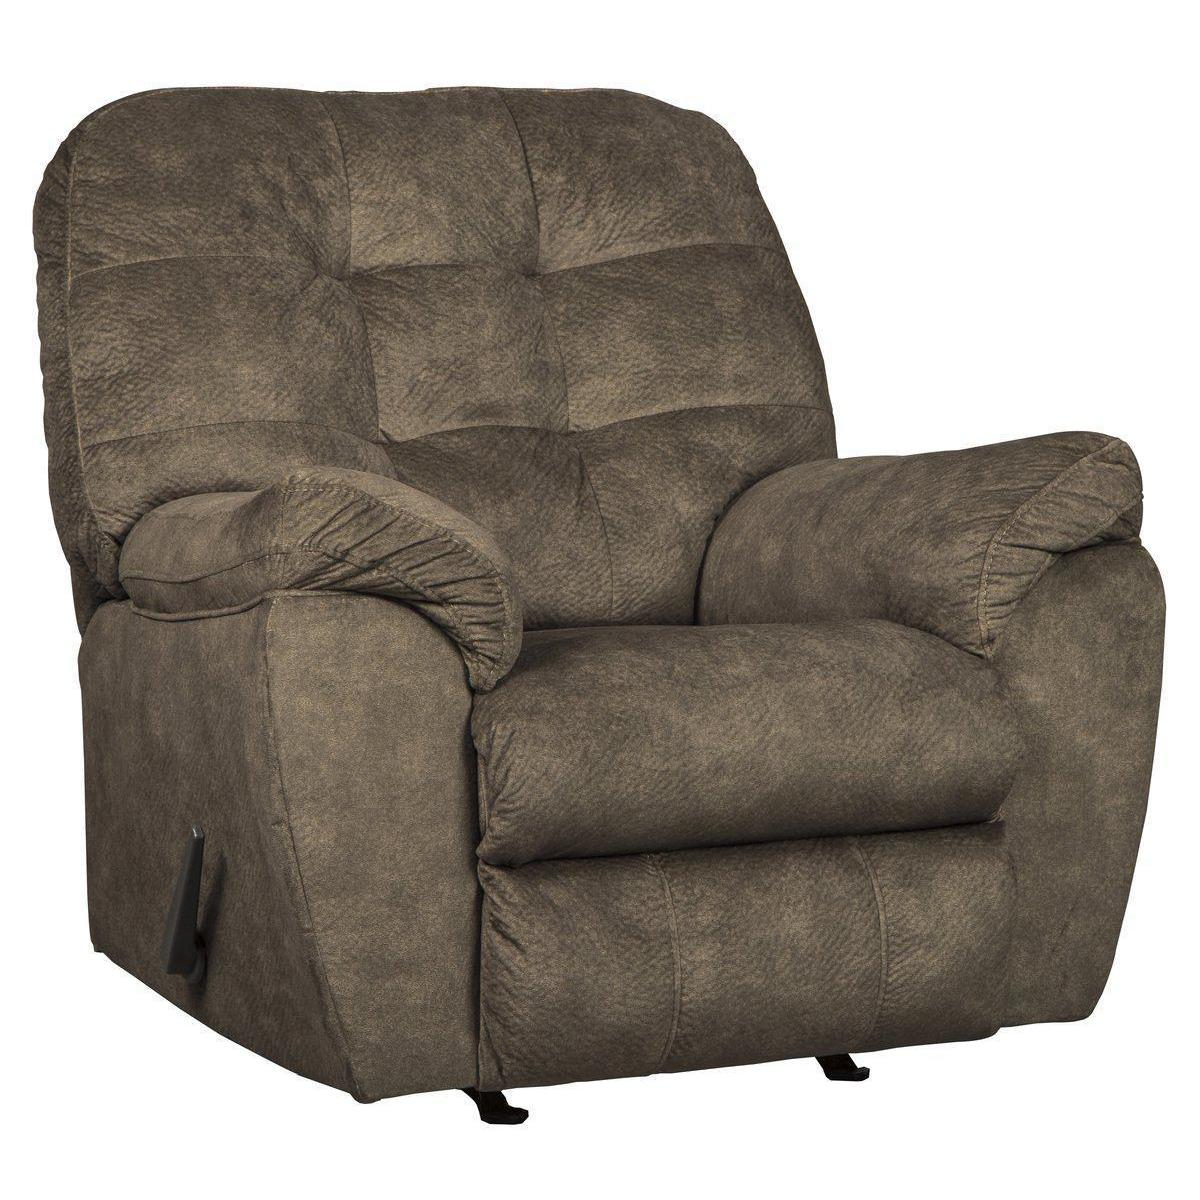 Accrington Rocker Recliner